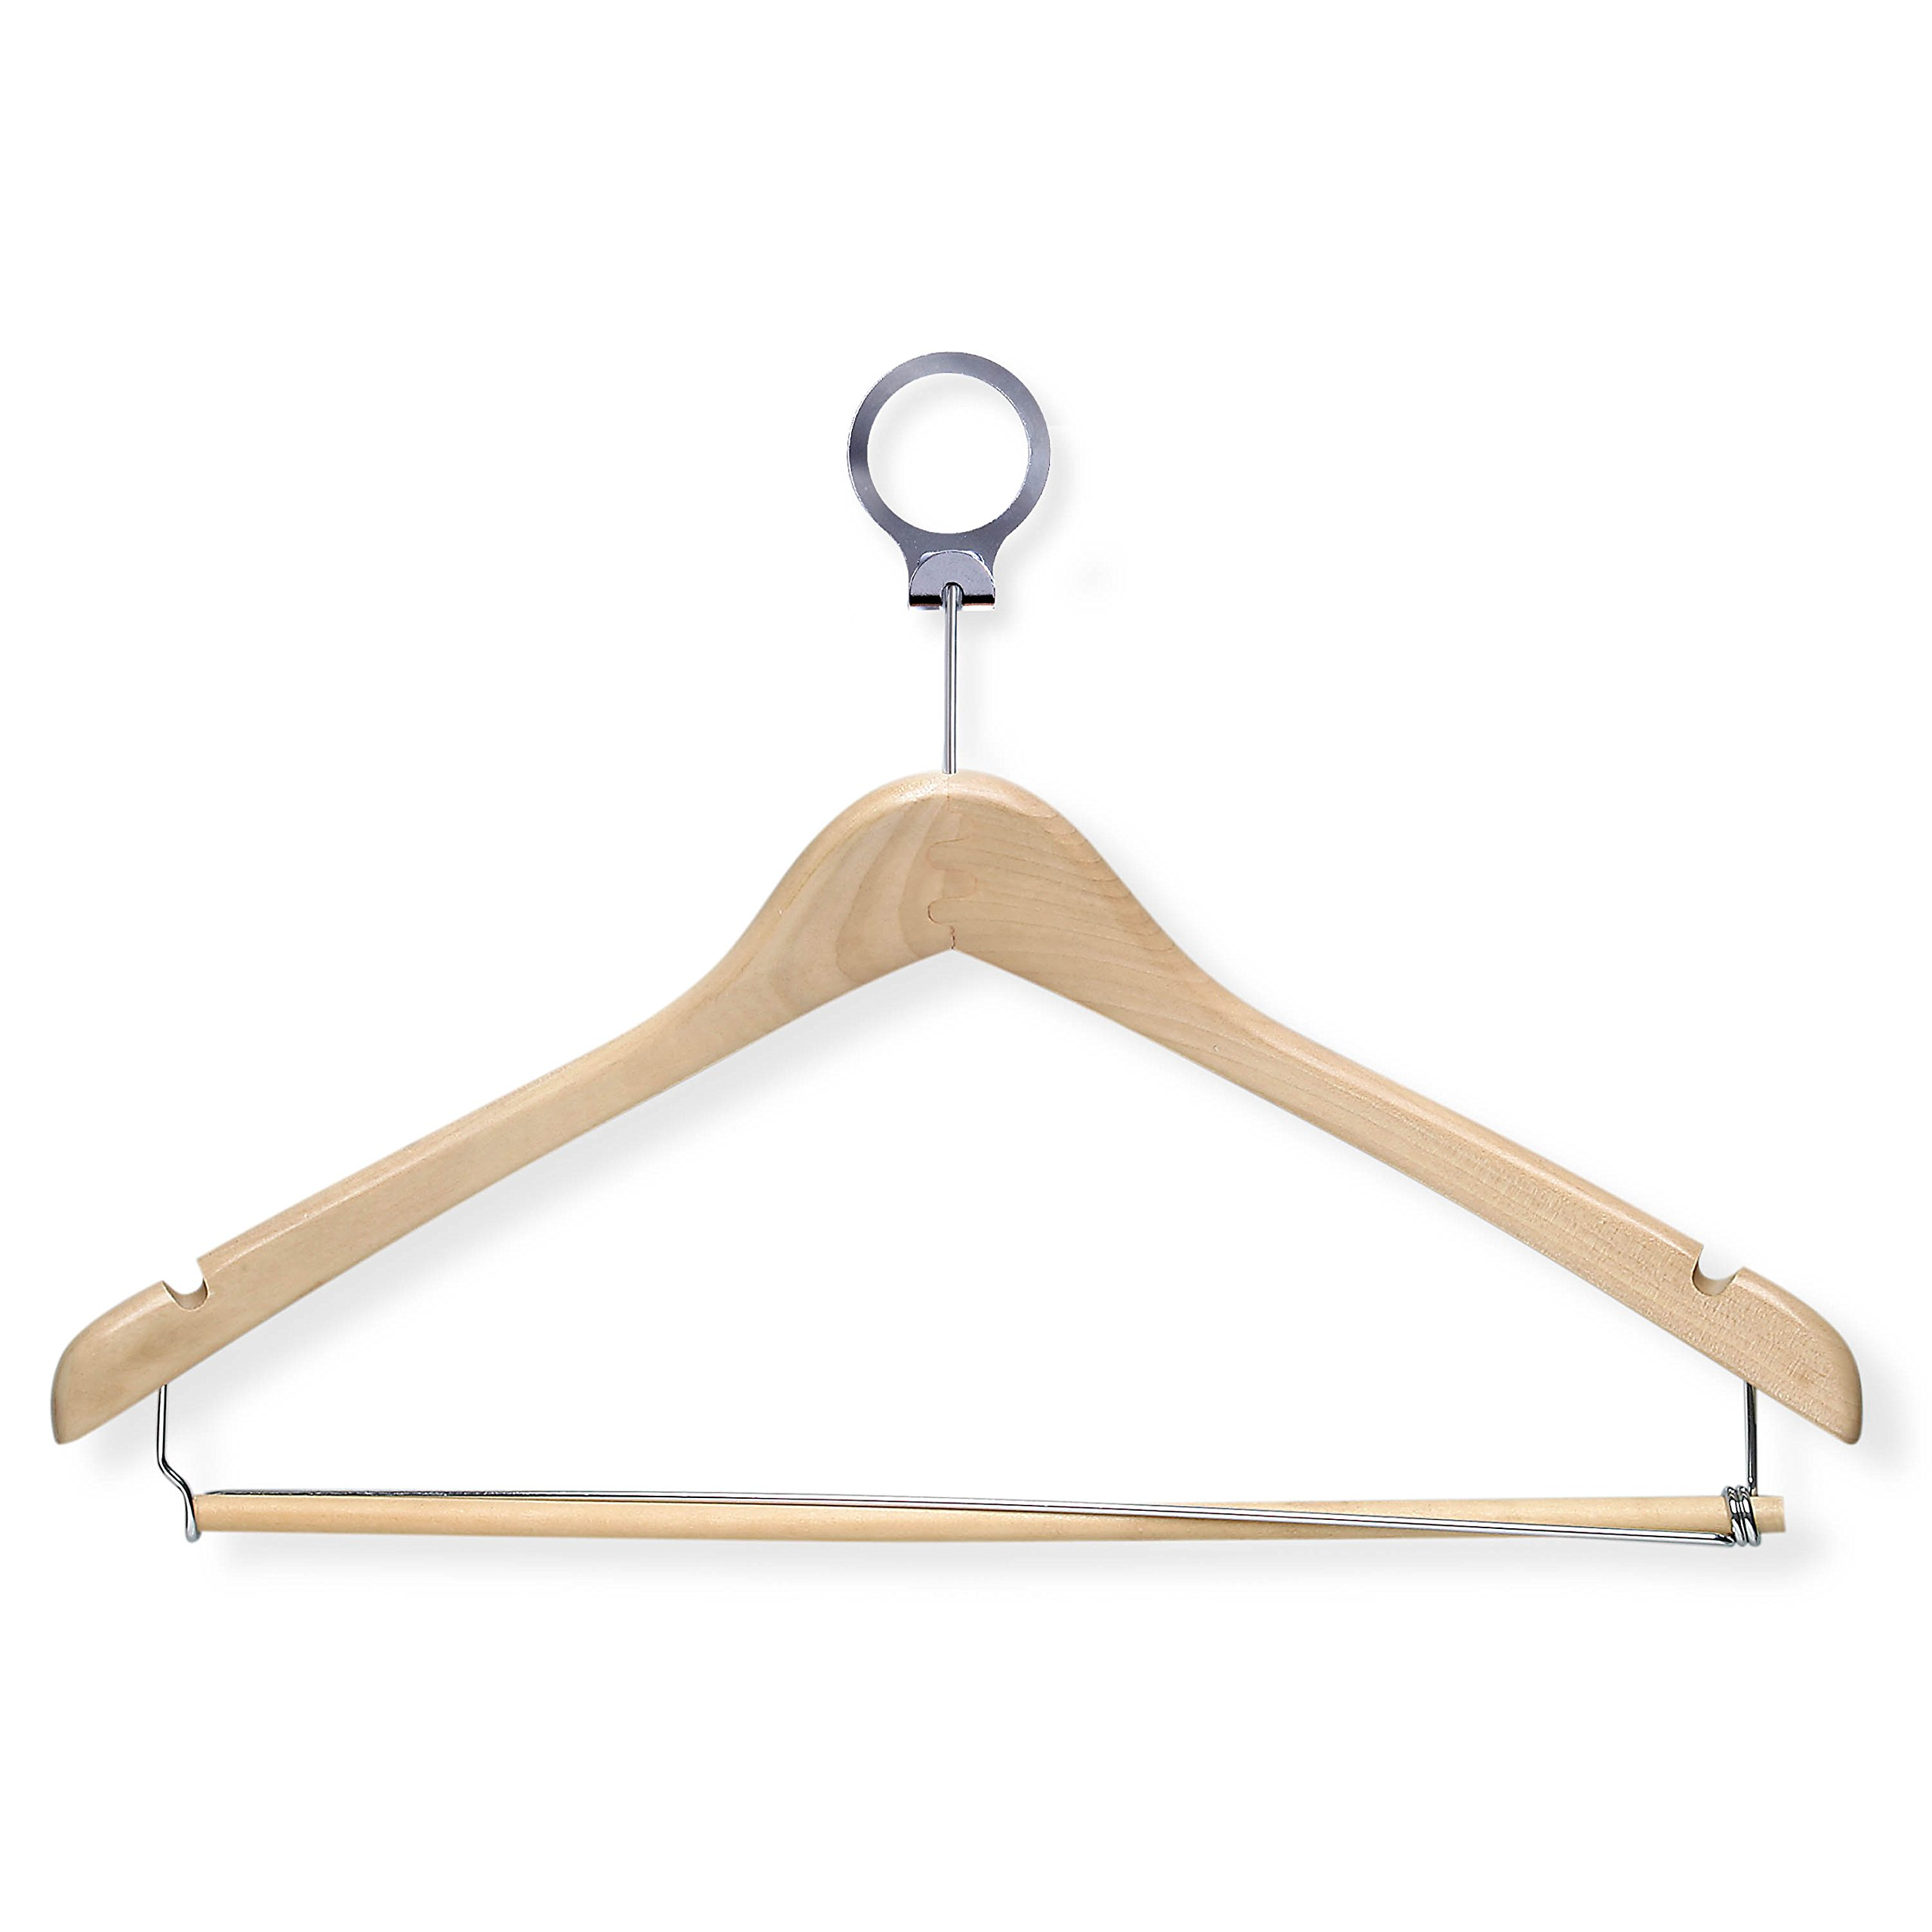 Honey-Can-Do HNG-01735 Hotel Suit Hangers- Locking Bar, Maple, 24-Pack